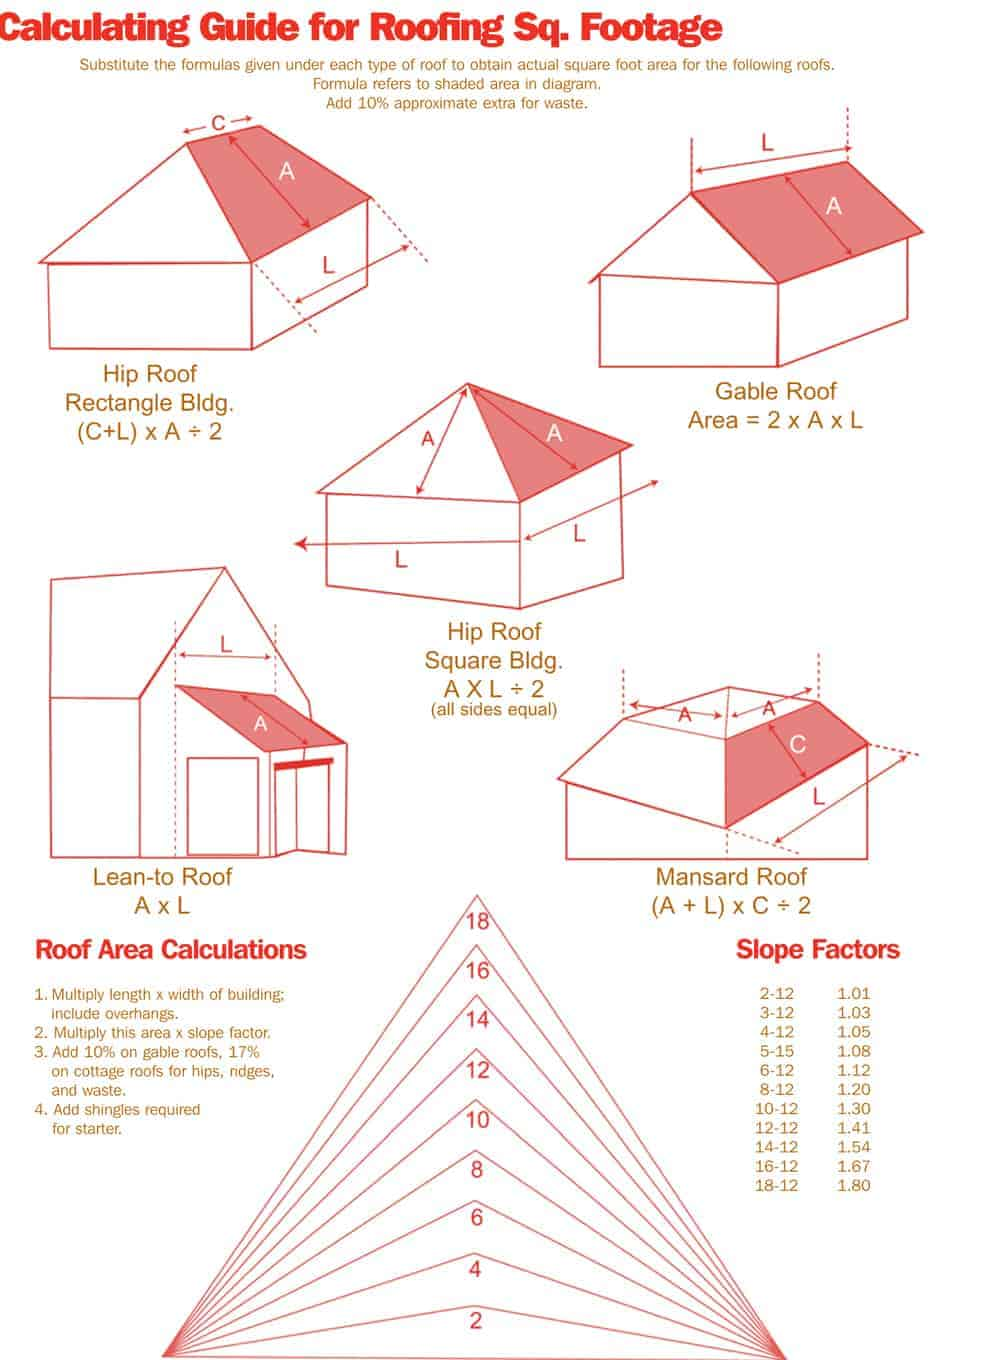 calculating-roof-square-footage-from-roofing-calculator